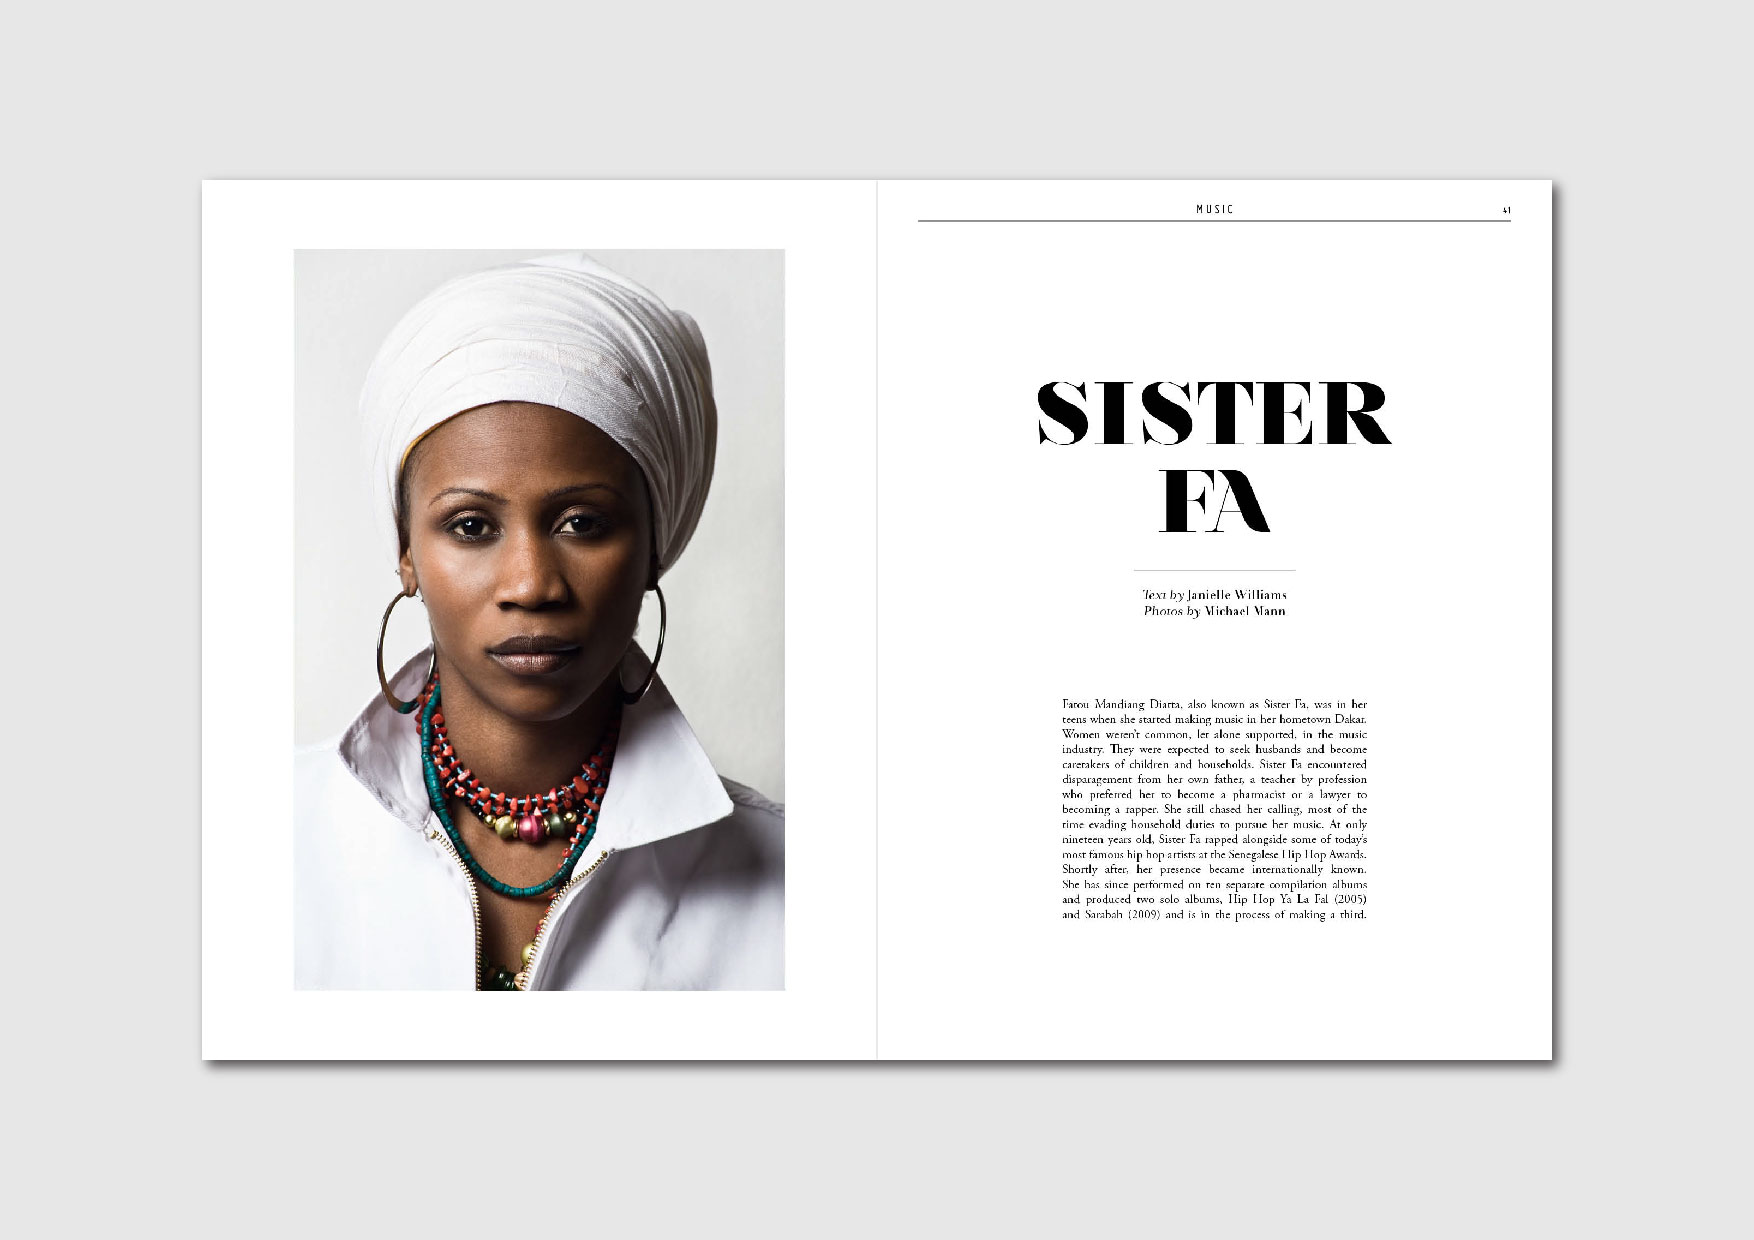 Sister Fa: getting to know the female rapper and activist from Senegal